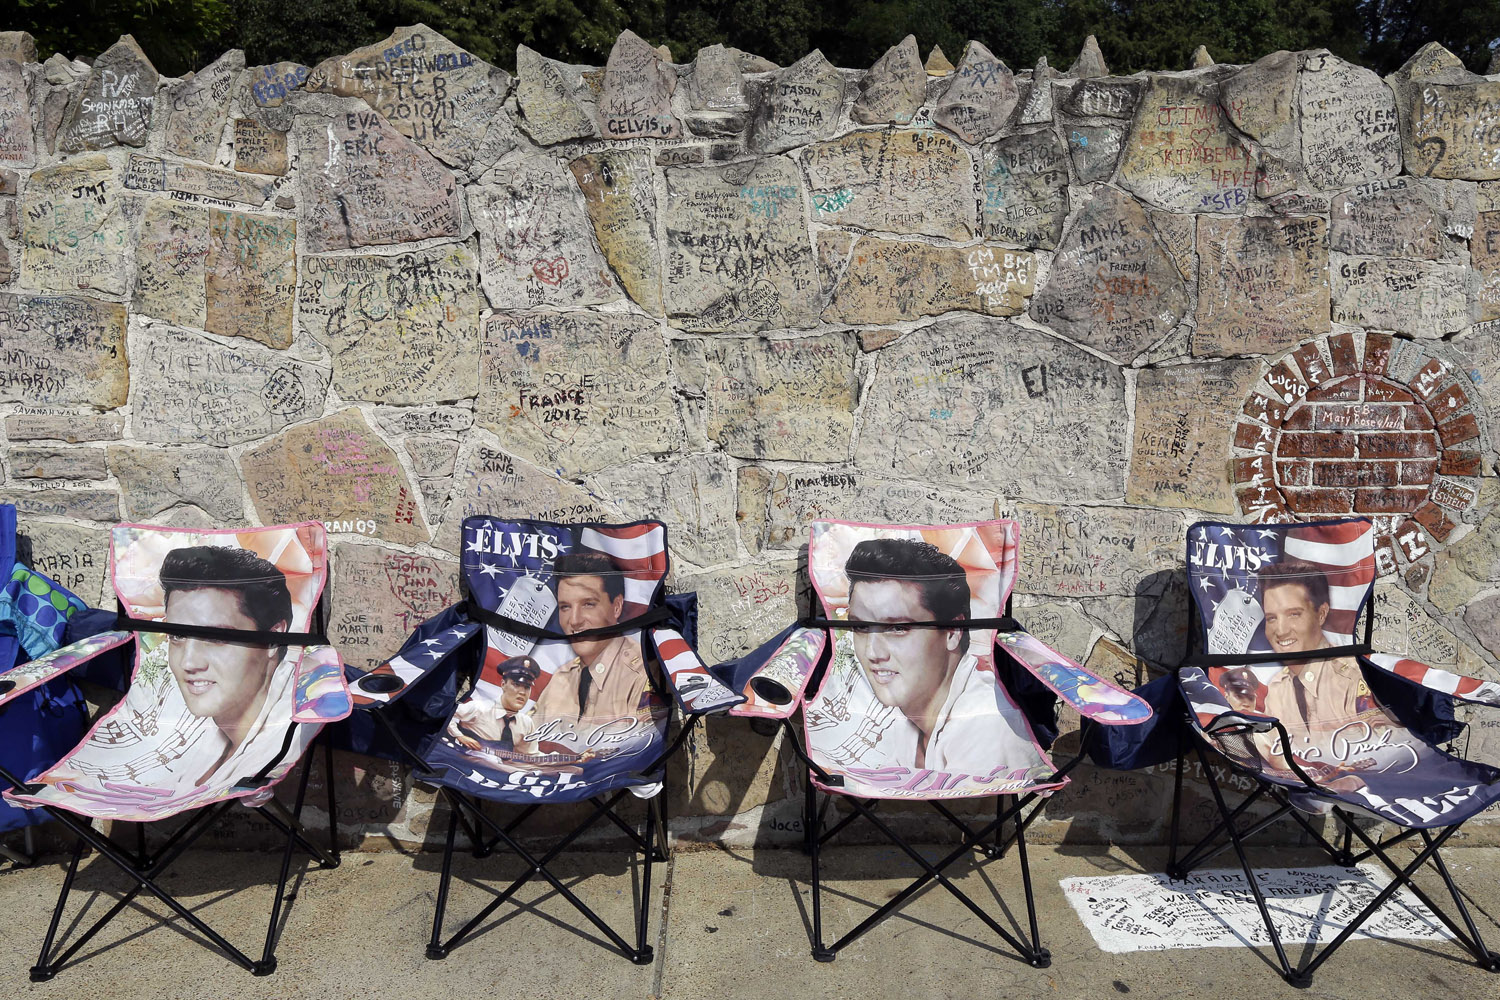 Aug. 15, 2012. Elvis Presley chairs hold spots for people waiting outside Graceland. Fans are lined up to take part in the annual candlelight vigil marking the 35th anniversary of Presley's death.